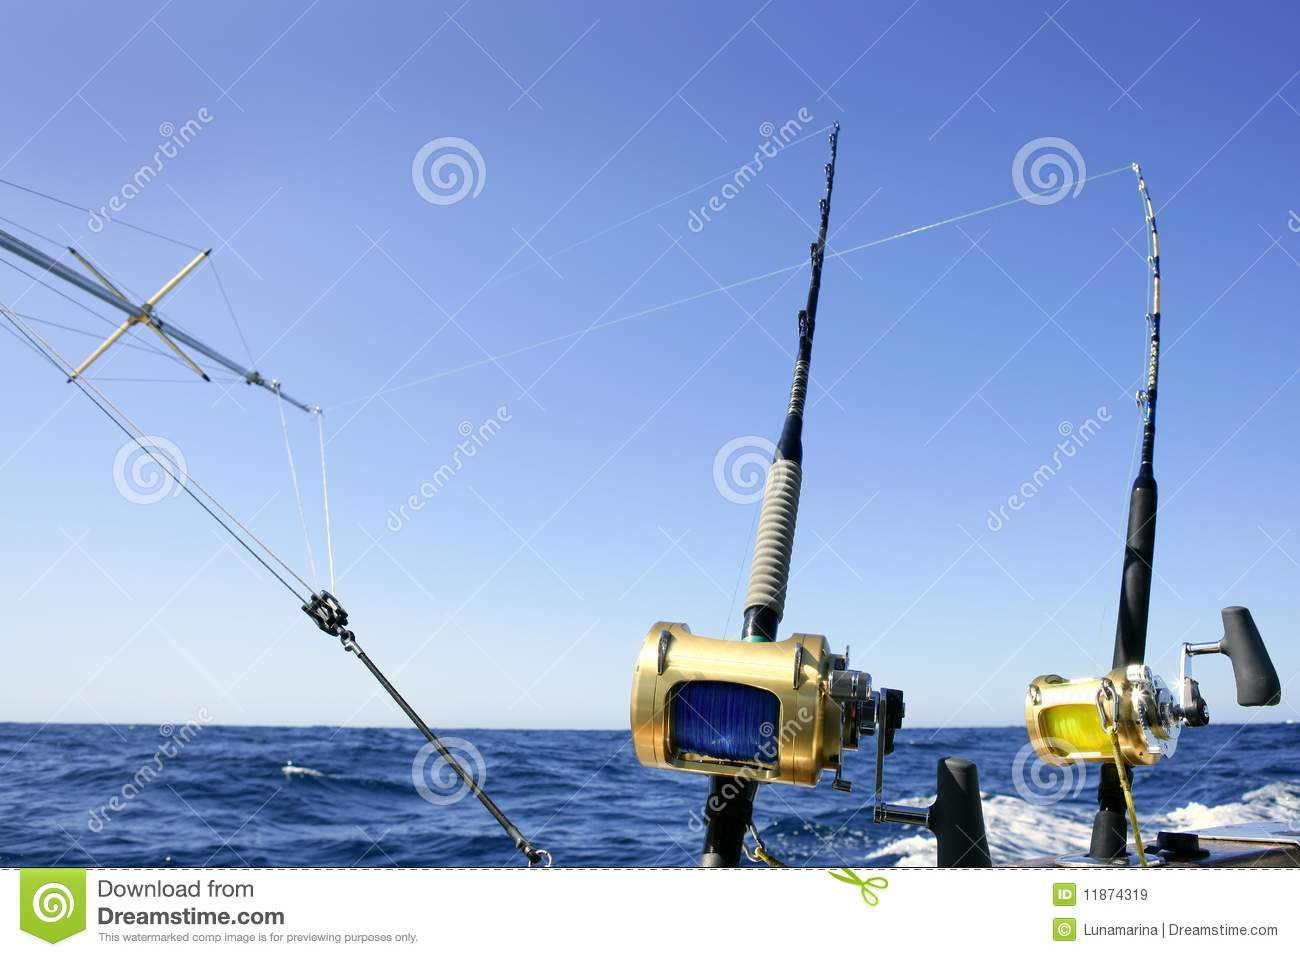 Big game boat fishing in deep sea stock image image of for Fishing boat games